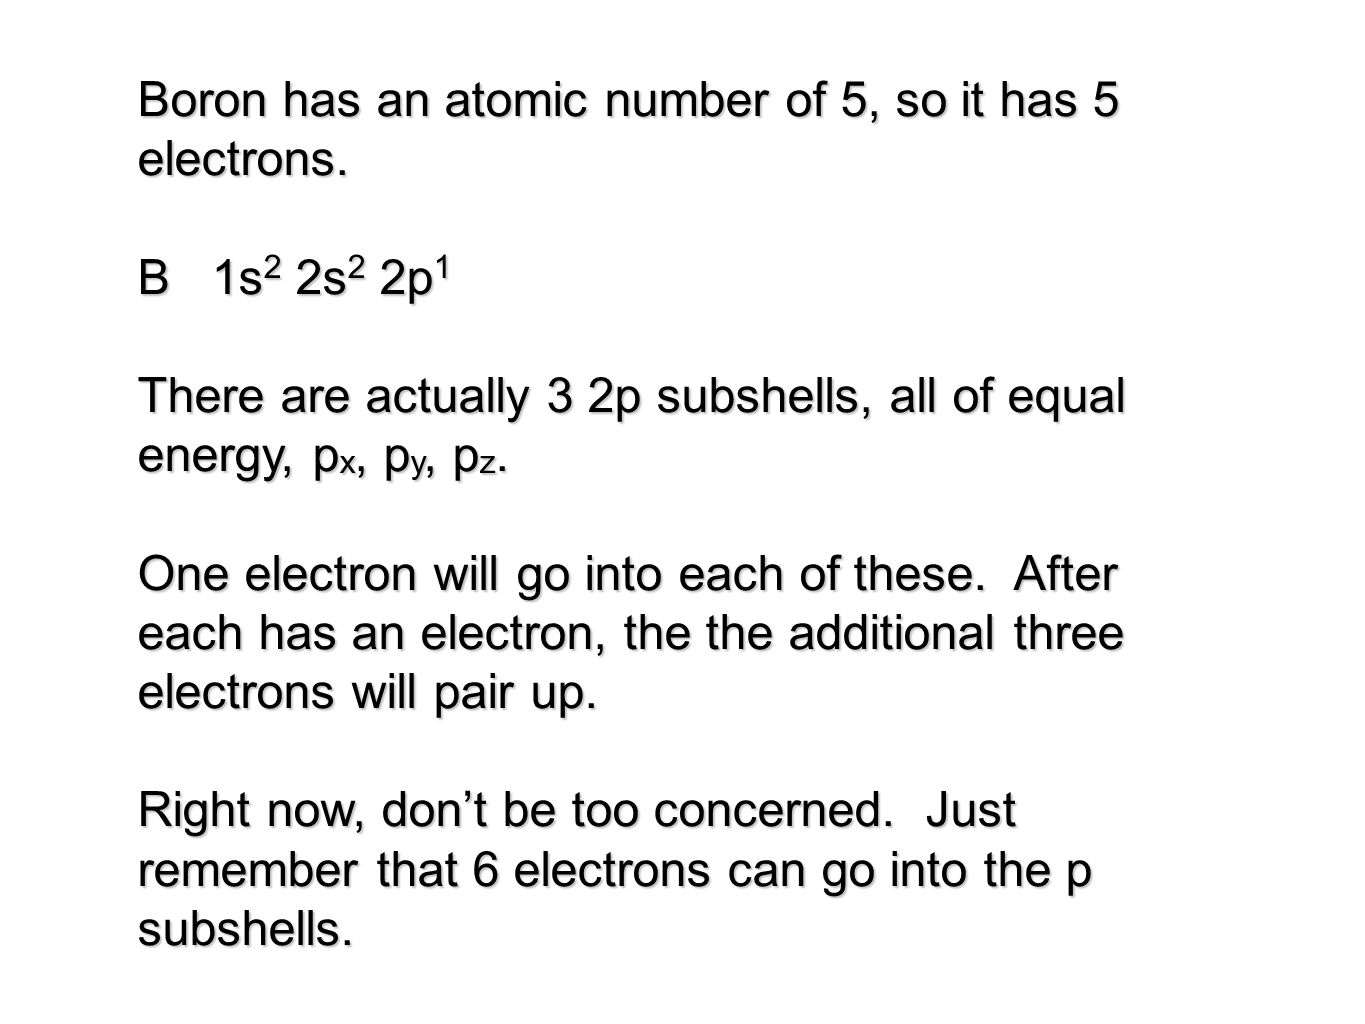 Boron has an atomic number of 5, so it has 5 electrons.